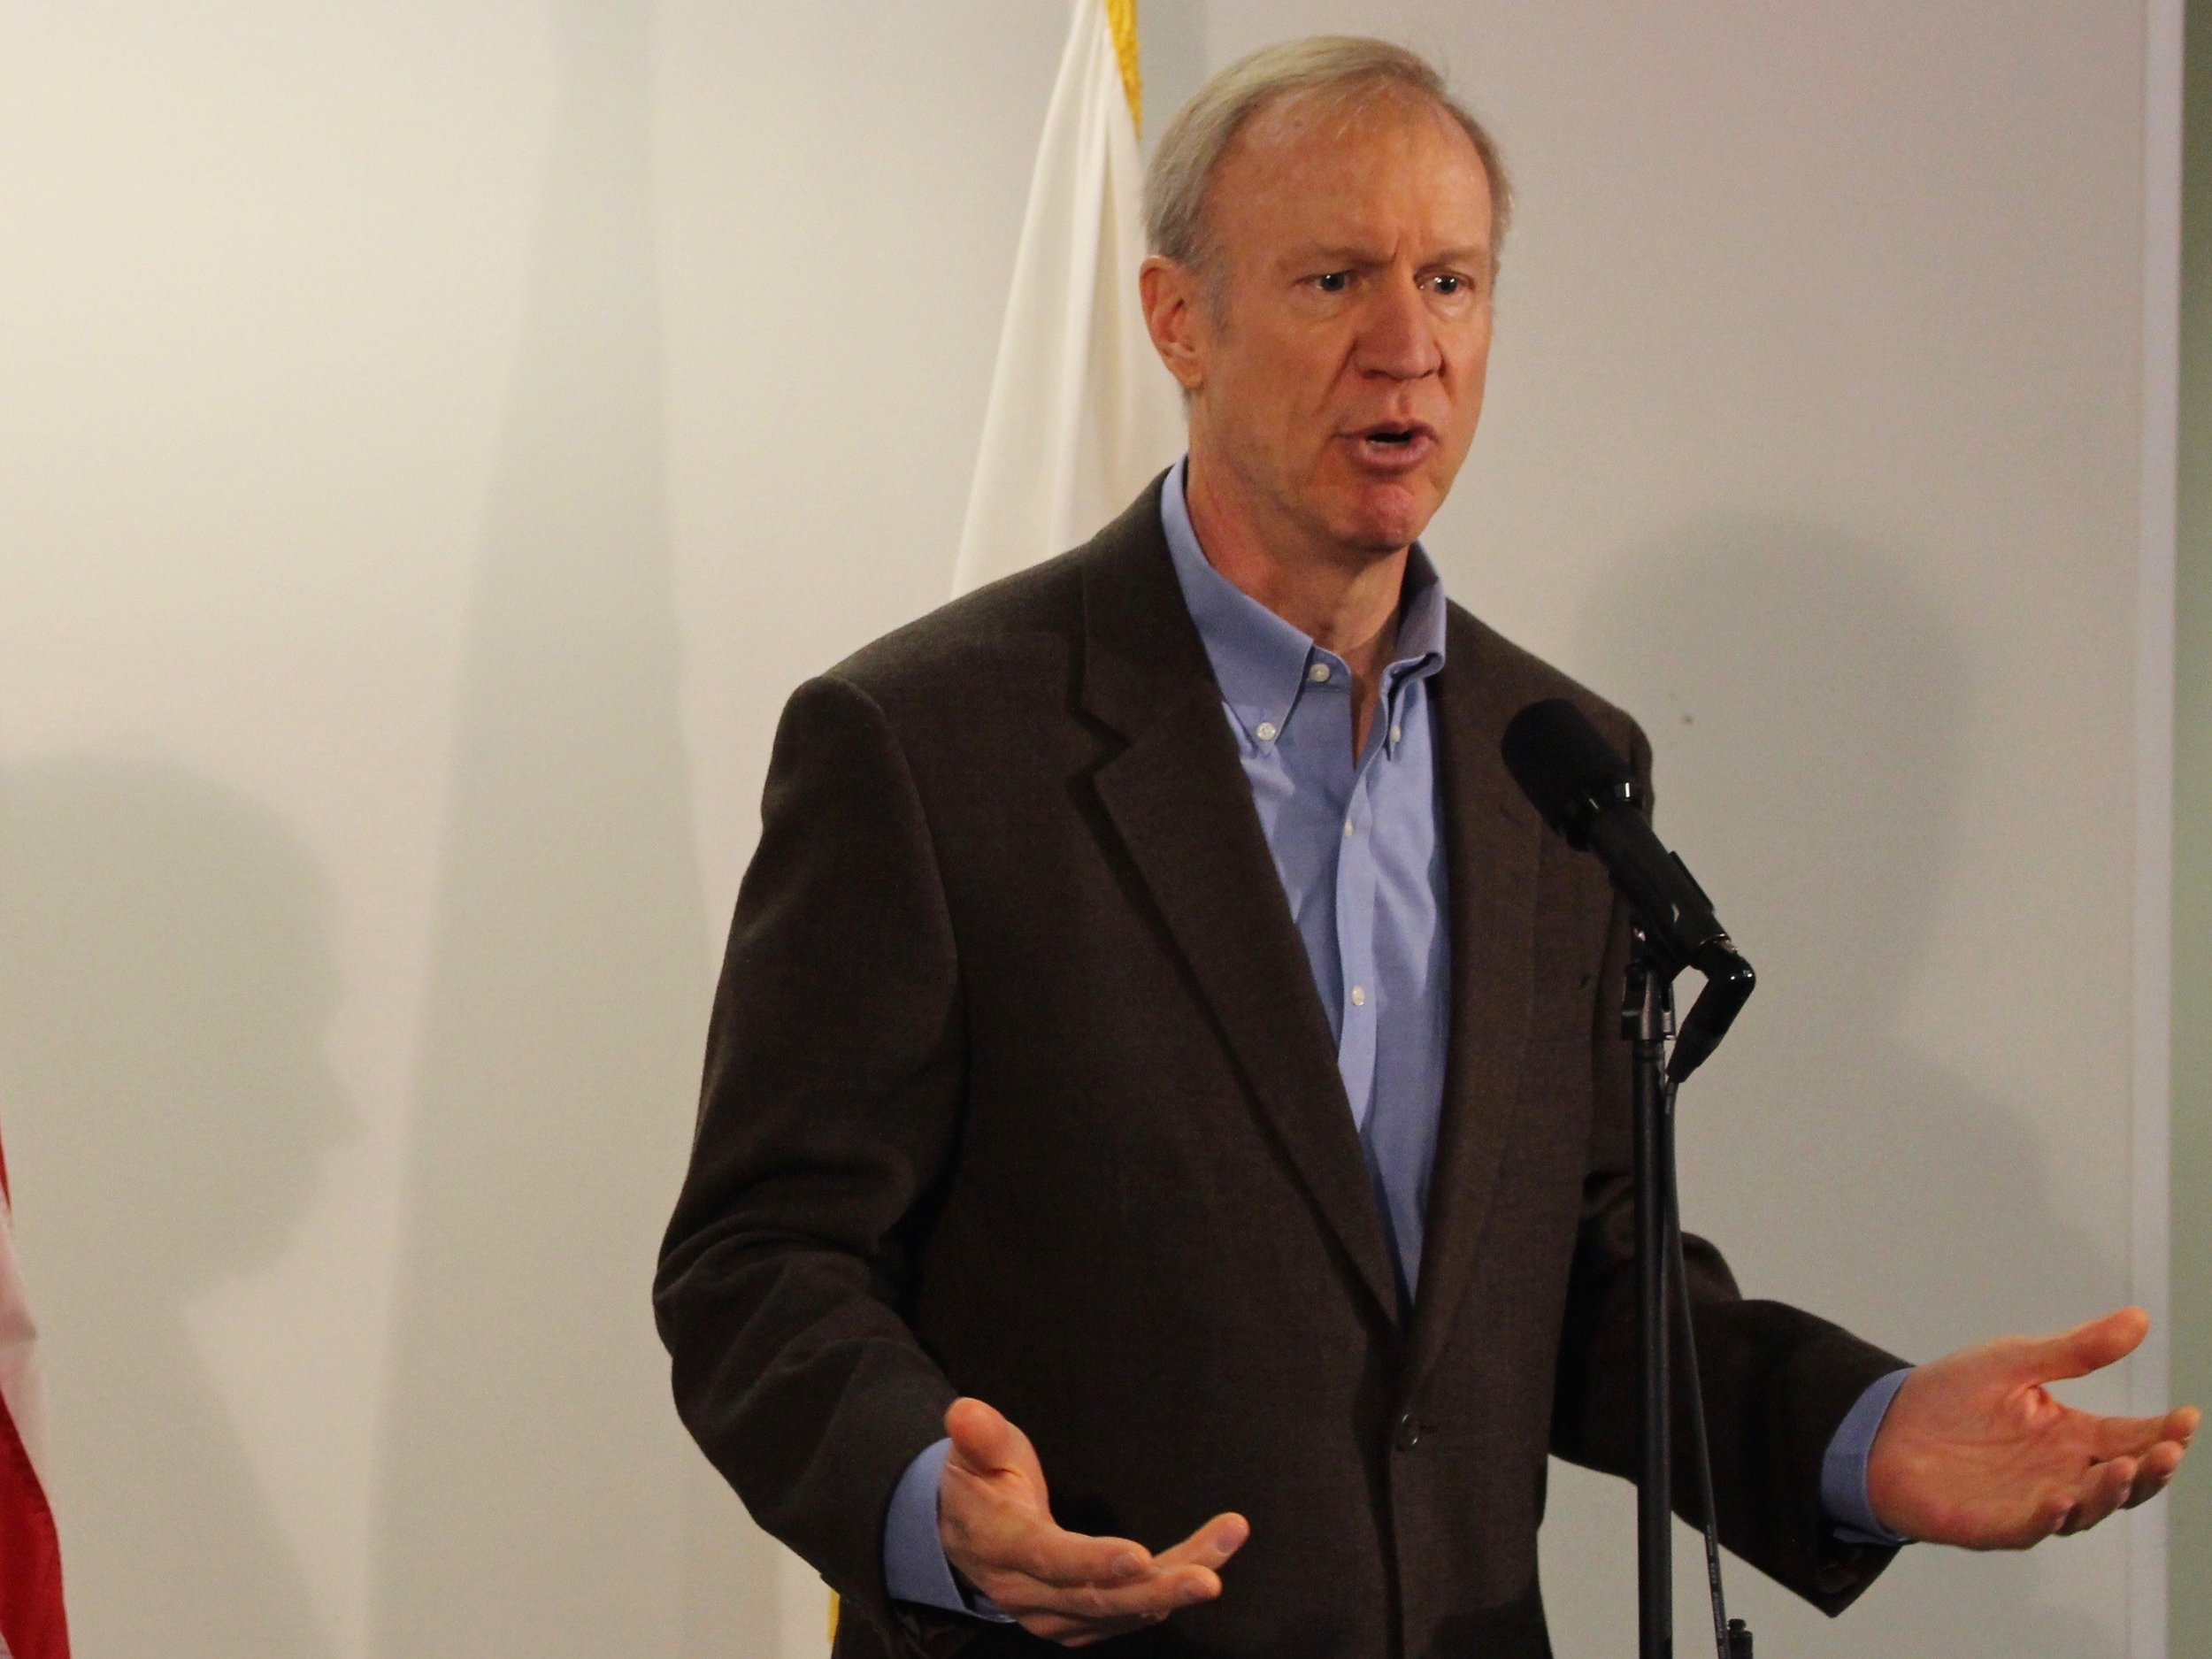 A state audit In January questioned Gov. Rauner's administration of the Medicaid program. -